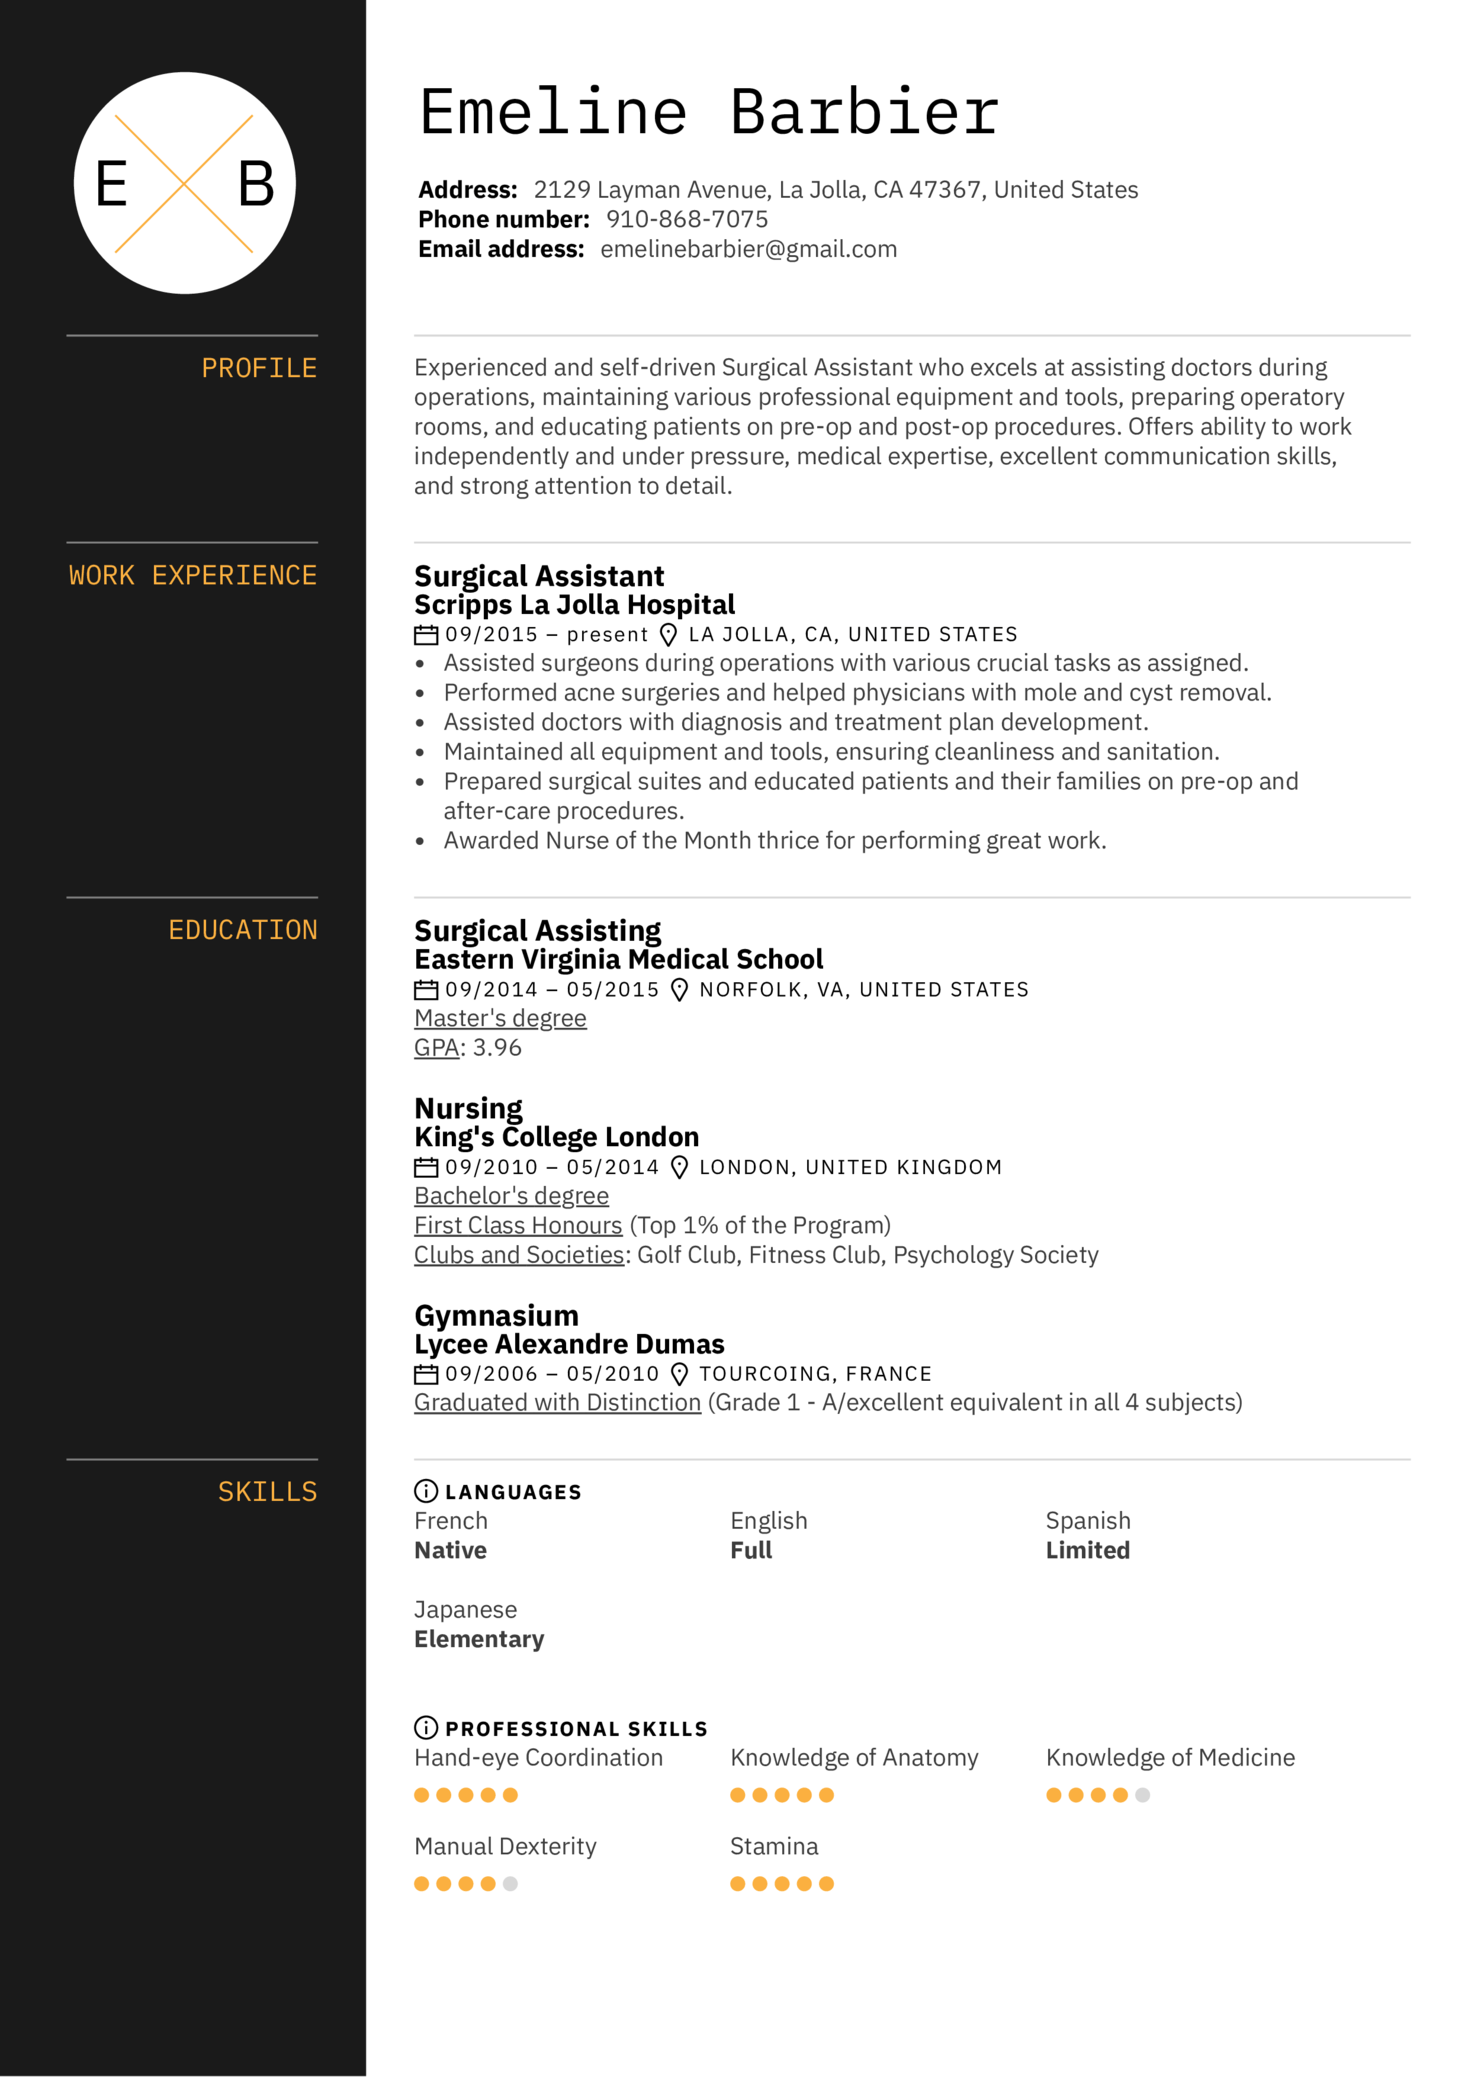 Surgical Assistant Resume Template (parte 1)